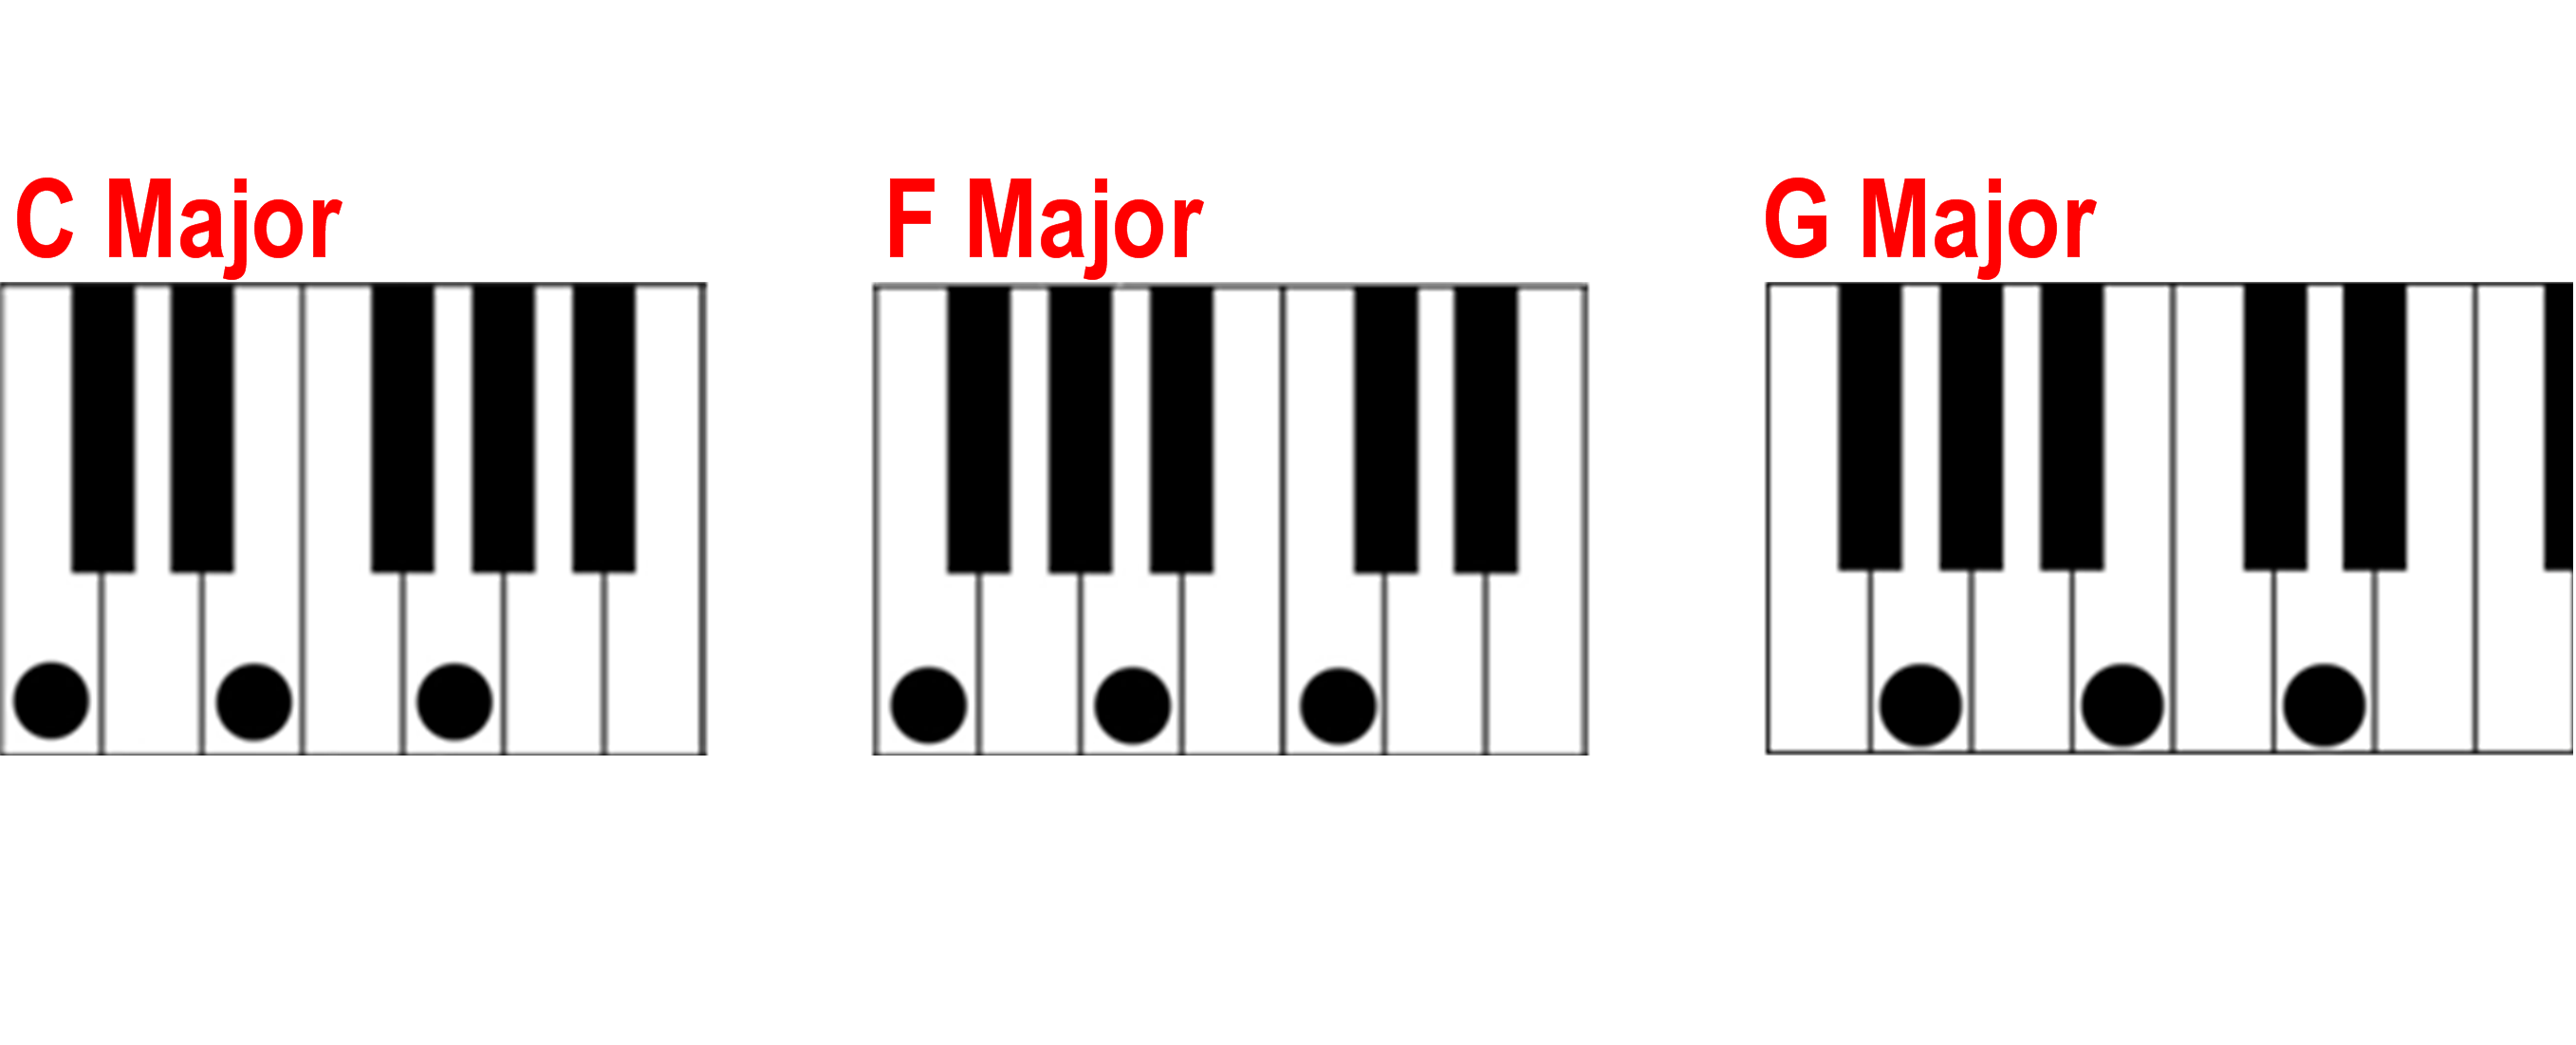 Finding a major chord on the piano c f and g major piano chords hexwebz Gallery